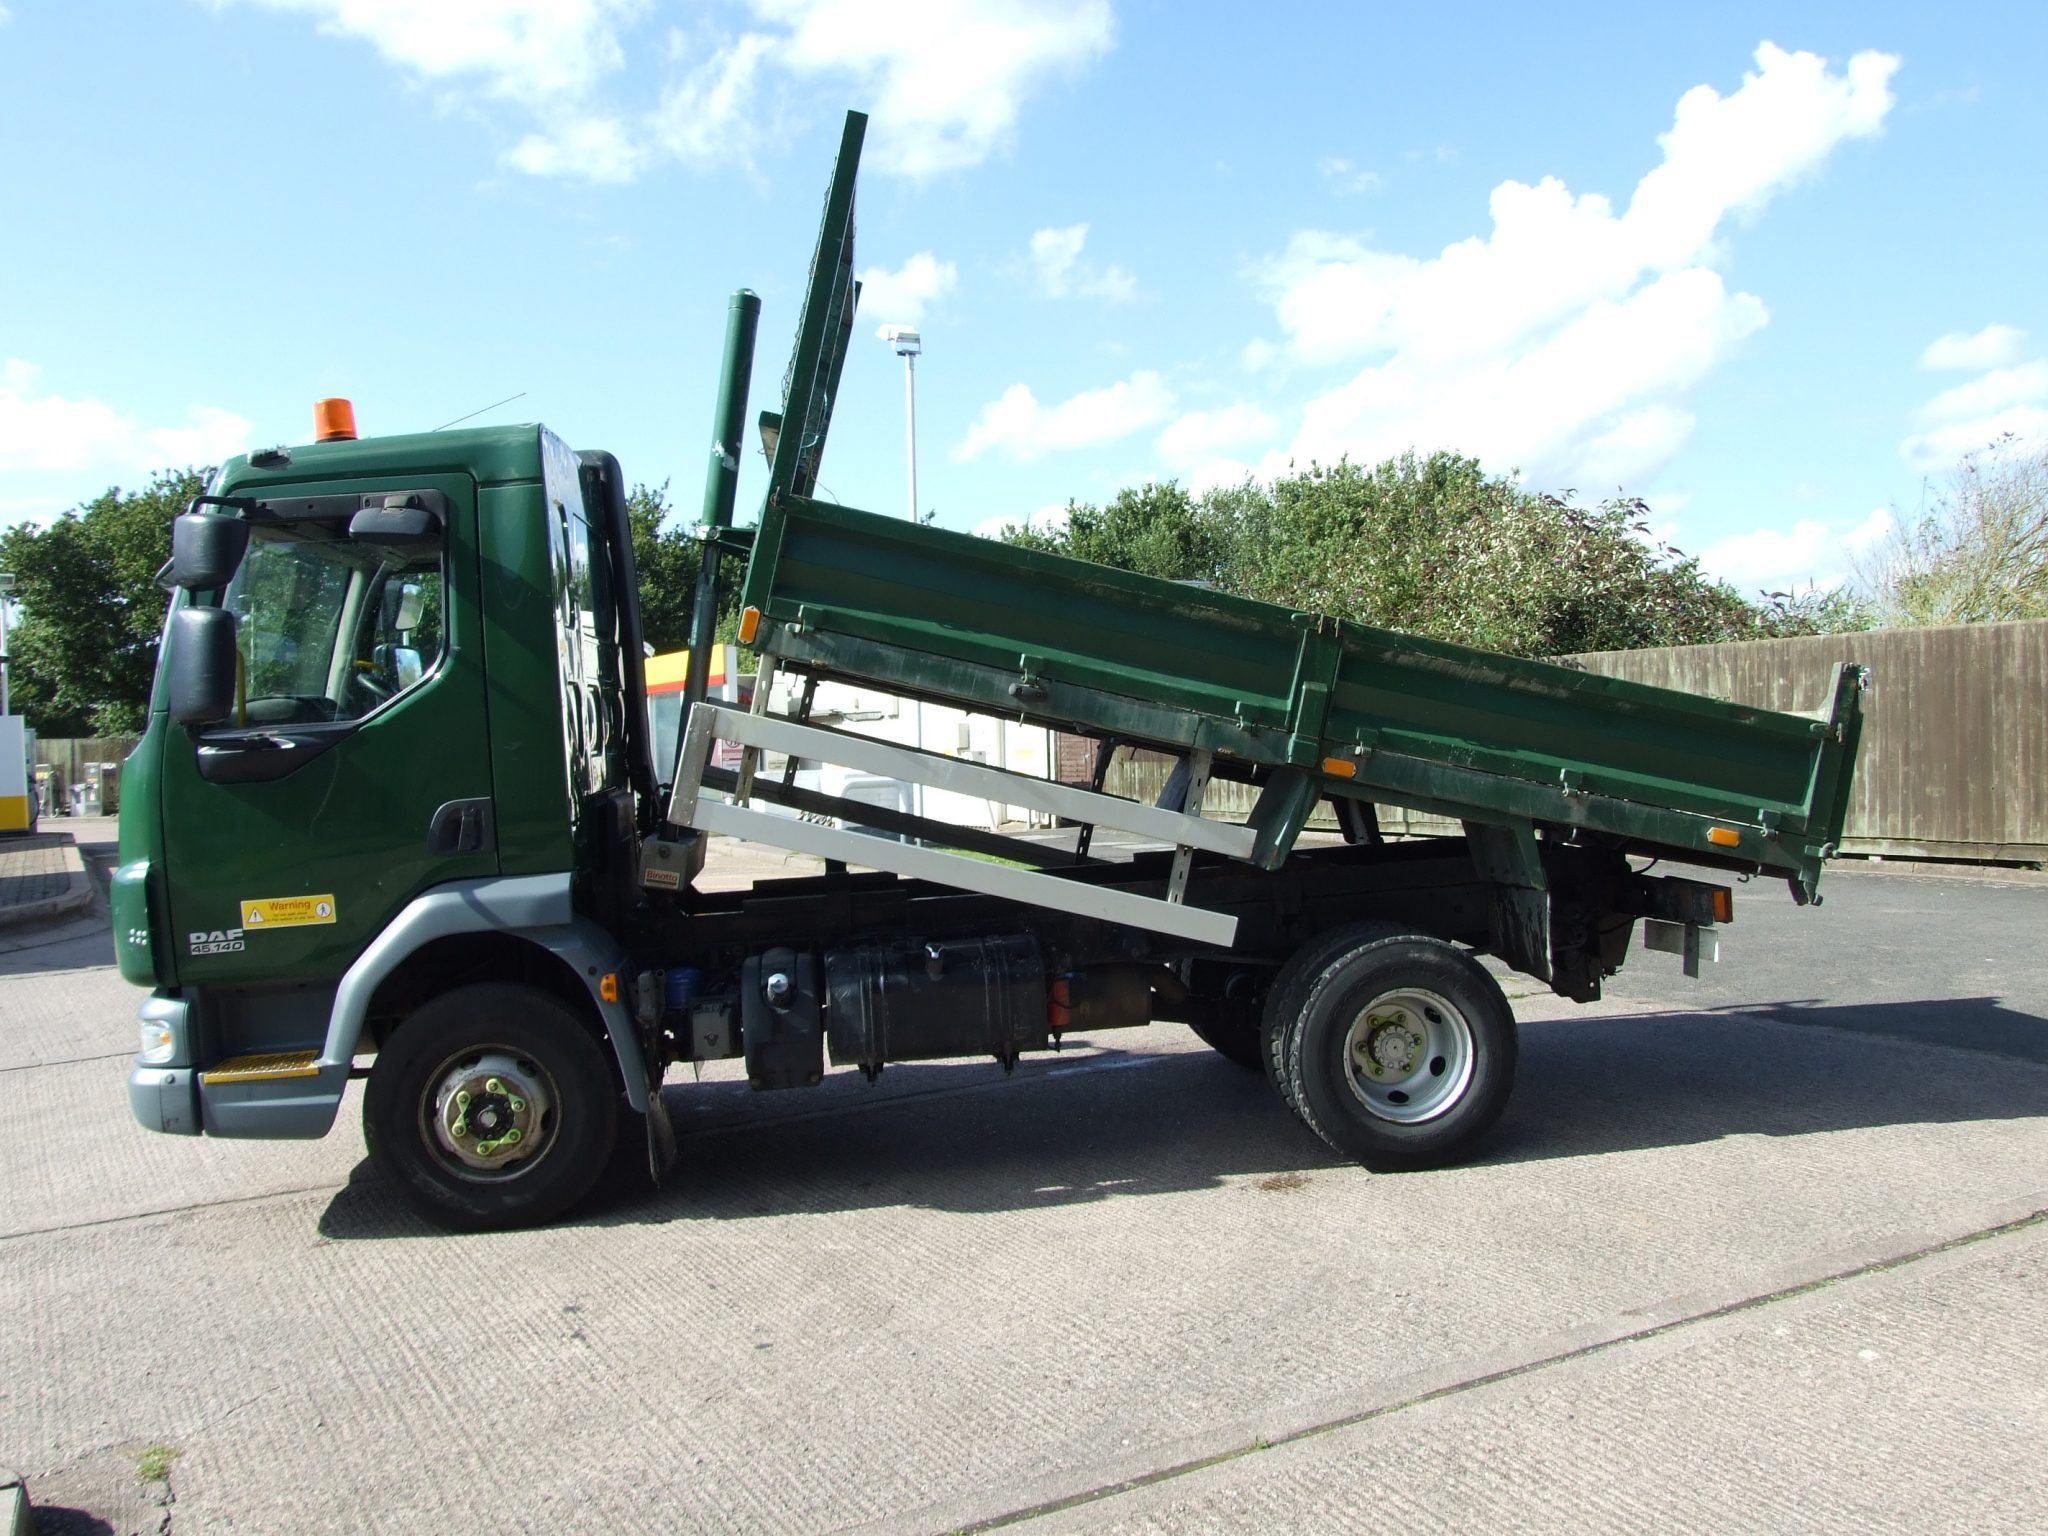 DAF TIPPER ONLY 179622KMS - Cromwell Trucks